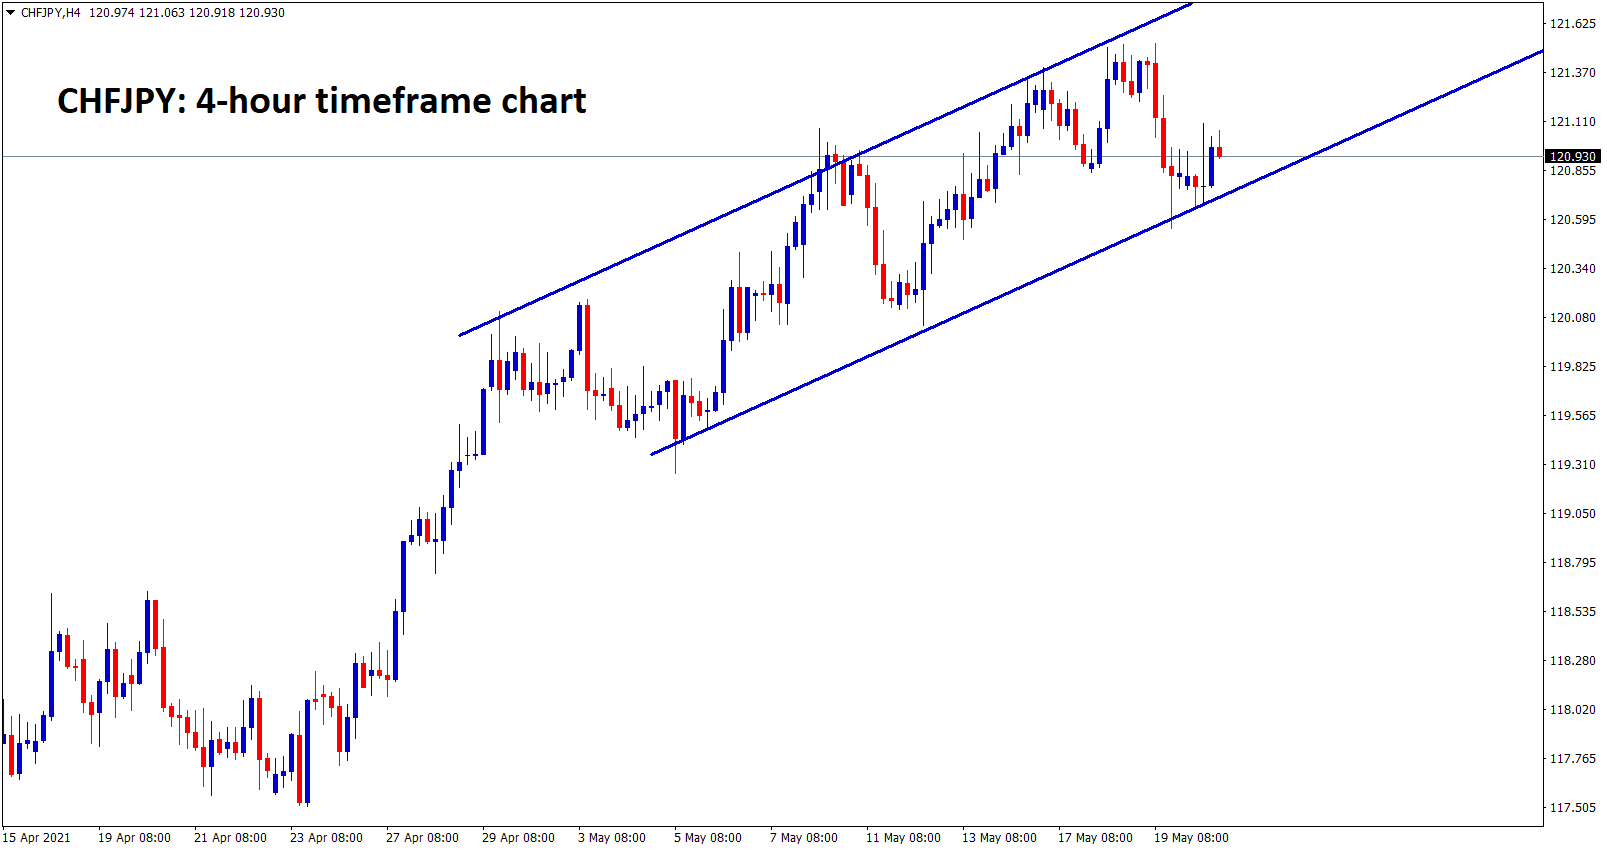 CHFJPY is moving in an ascending channel for long time in 4hr chart